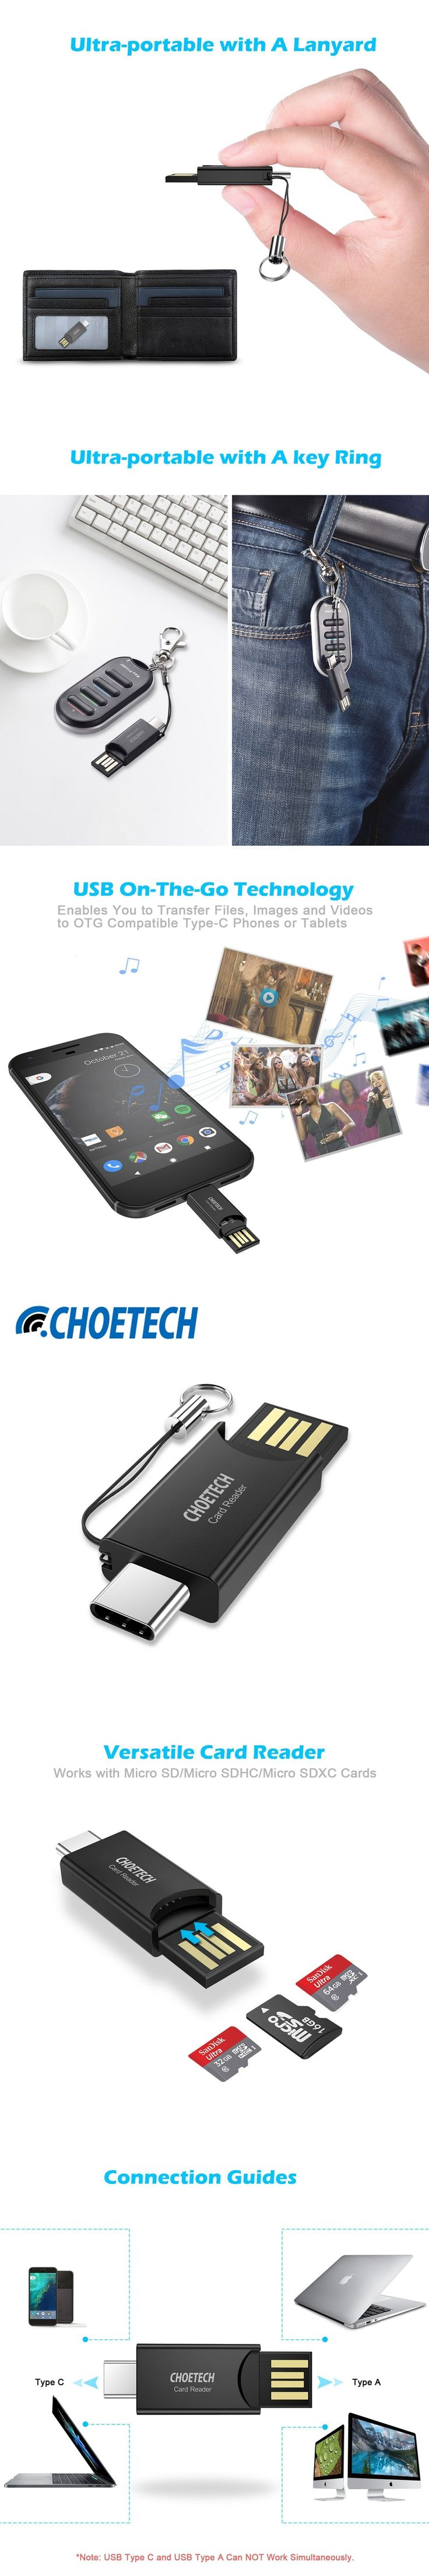 CHOETECH USB C Micro SD Card Reader Memory Card Reader with USB Type-C & Type-A OTG Adapter Connectors for MacBook Google Pixel